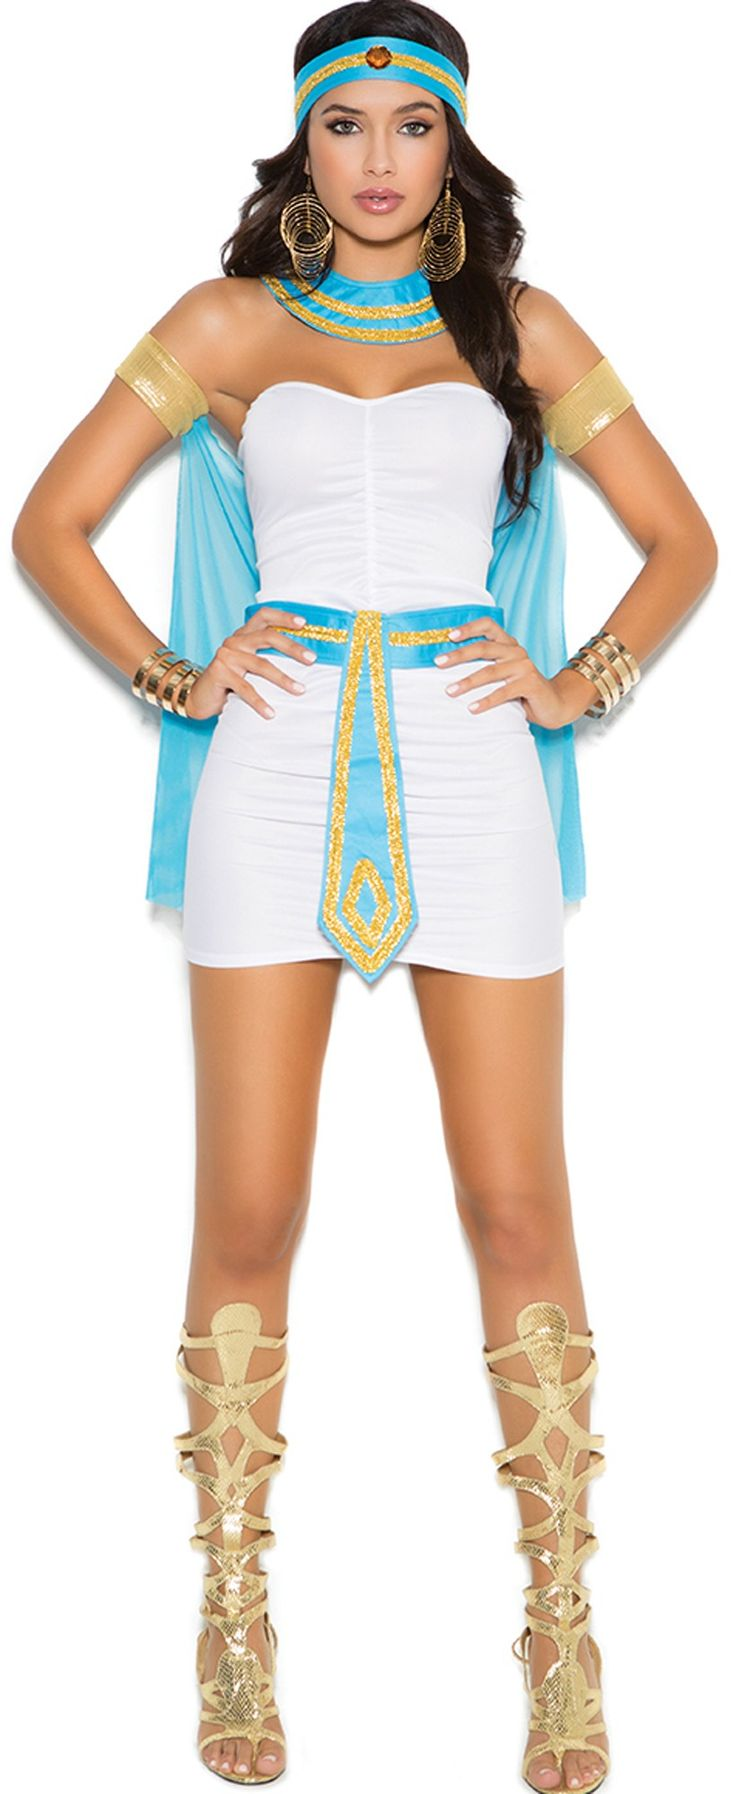 Queen of the Nile #Costume http://www.envycorner.com/queen-of-the-nile-costume-13128.html EM9138 Seductive Egyptian goddess #costume featuring a white bandeau style scrunched #minidress, gold armbands with an attached turquoise cape, matching turquoise and gold trimmed neck piece, headband and matching belt.  #halloweencostumes #halloween2015 #envycorner  #sexy #outfit #forwomen